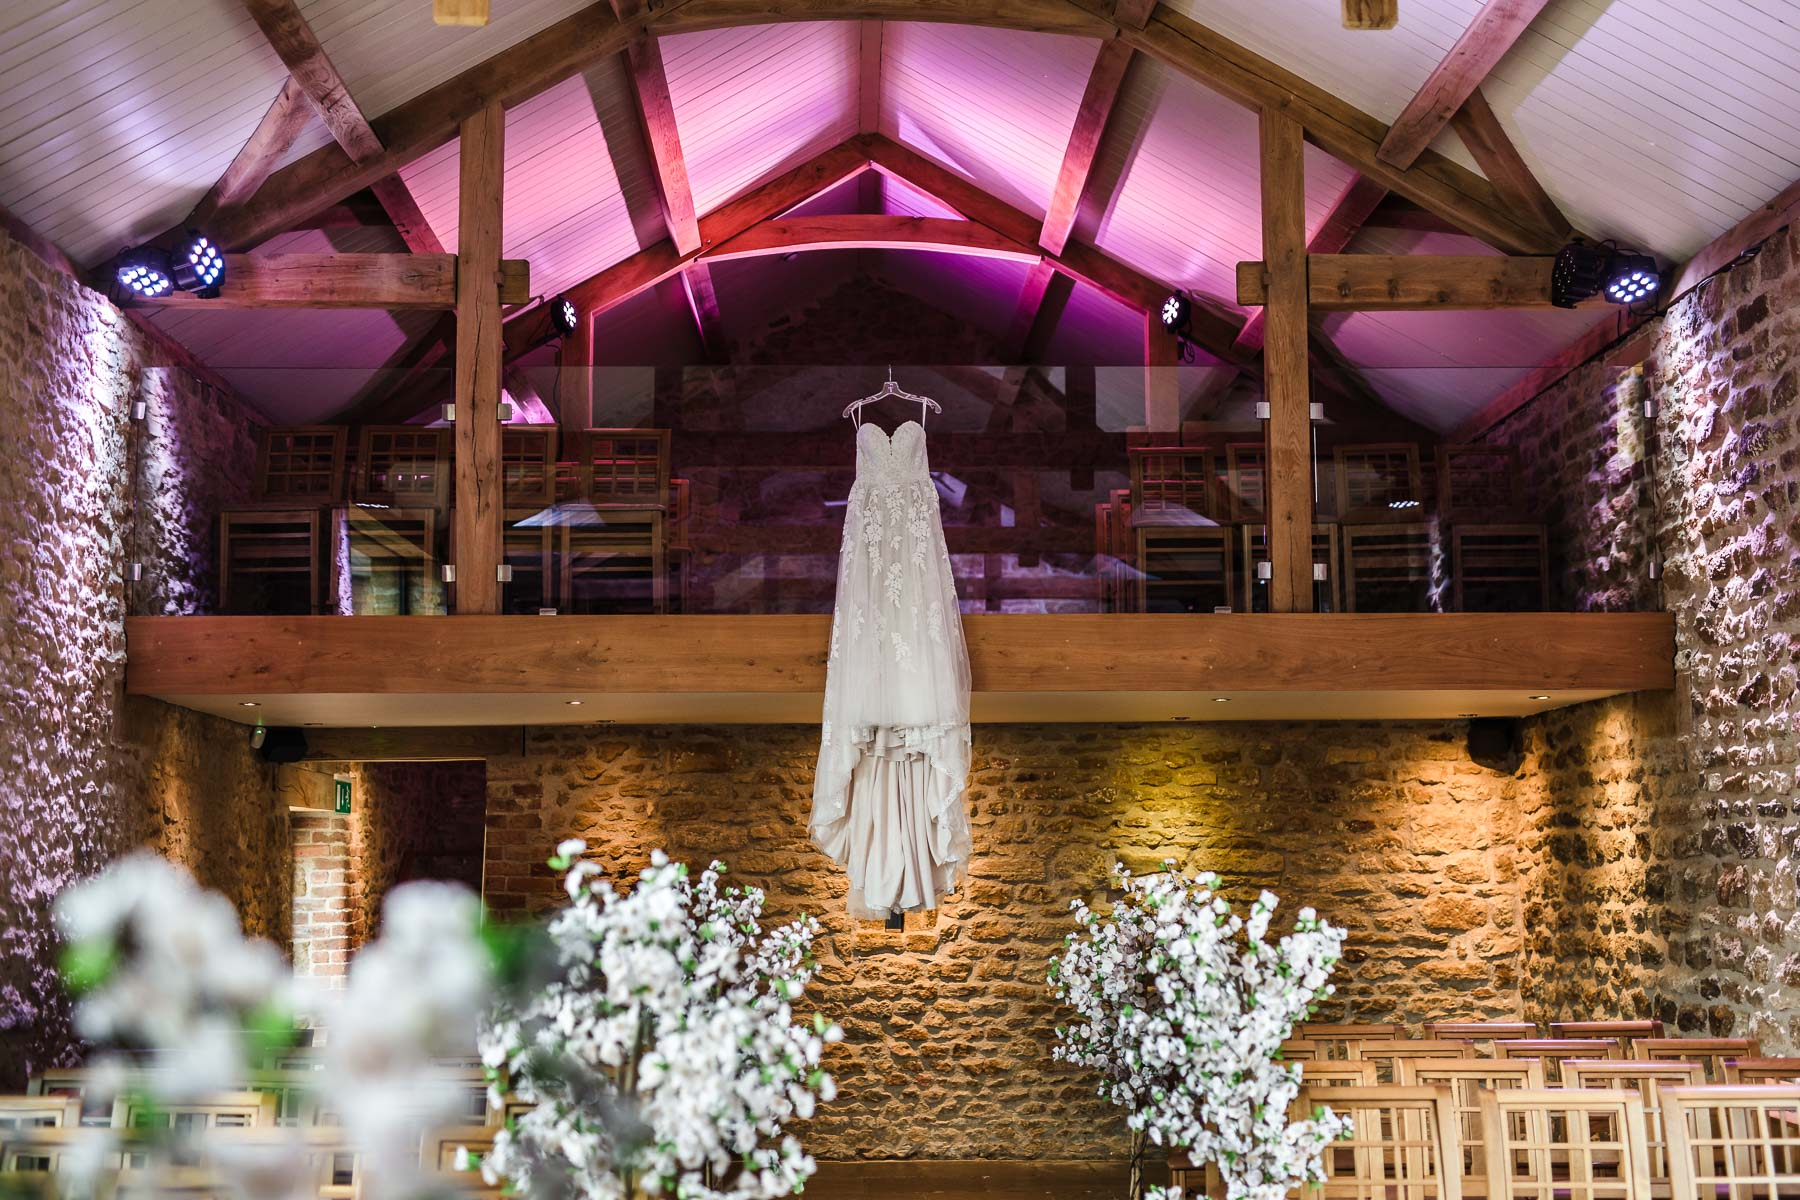 Wedding Dress hanging in the mortain barn